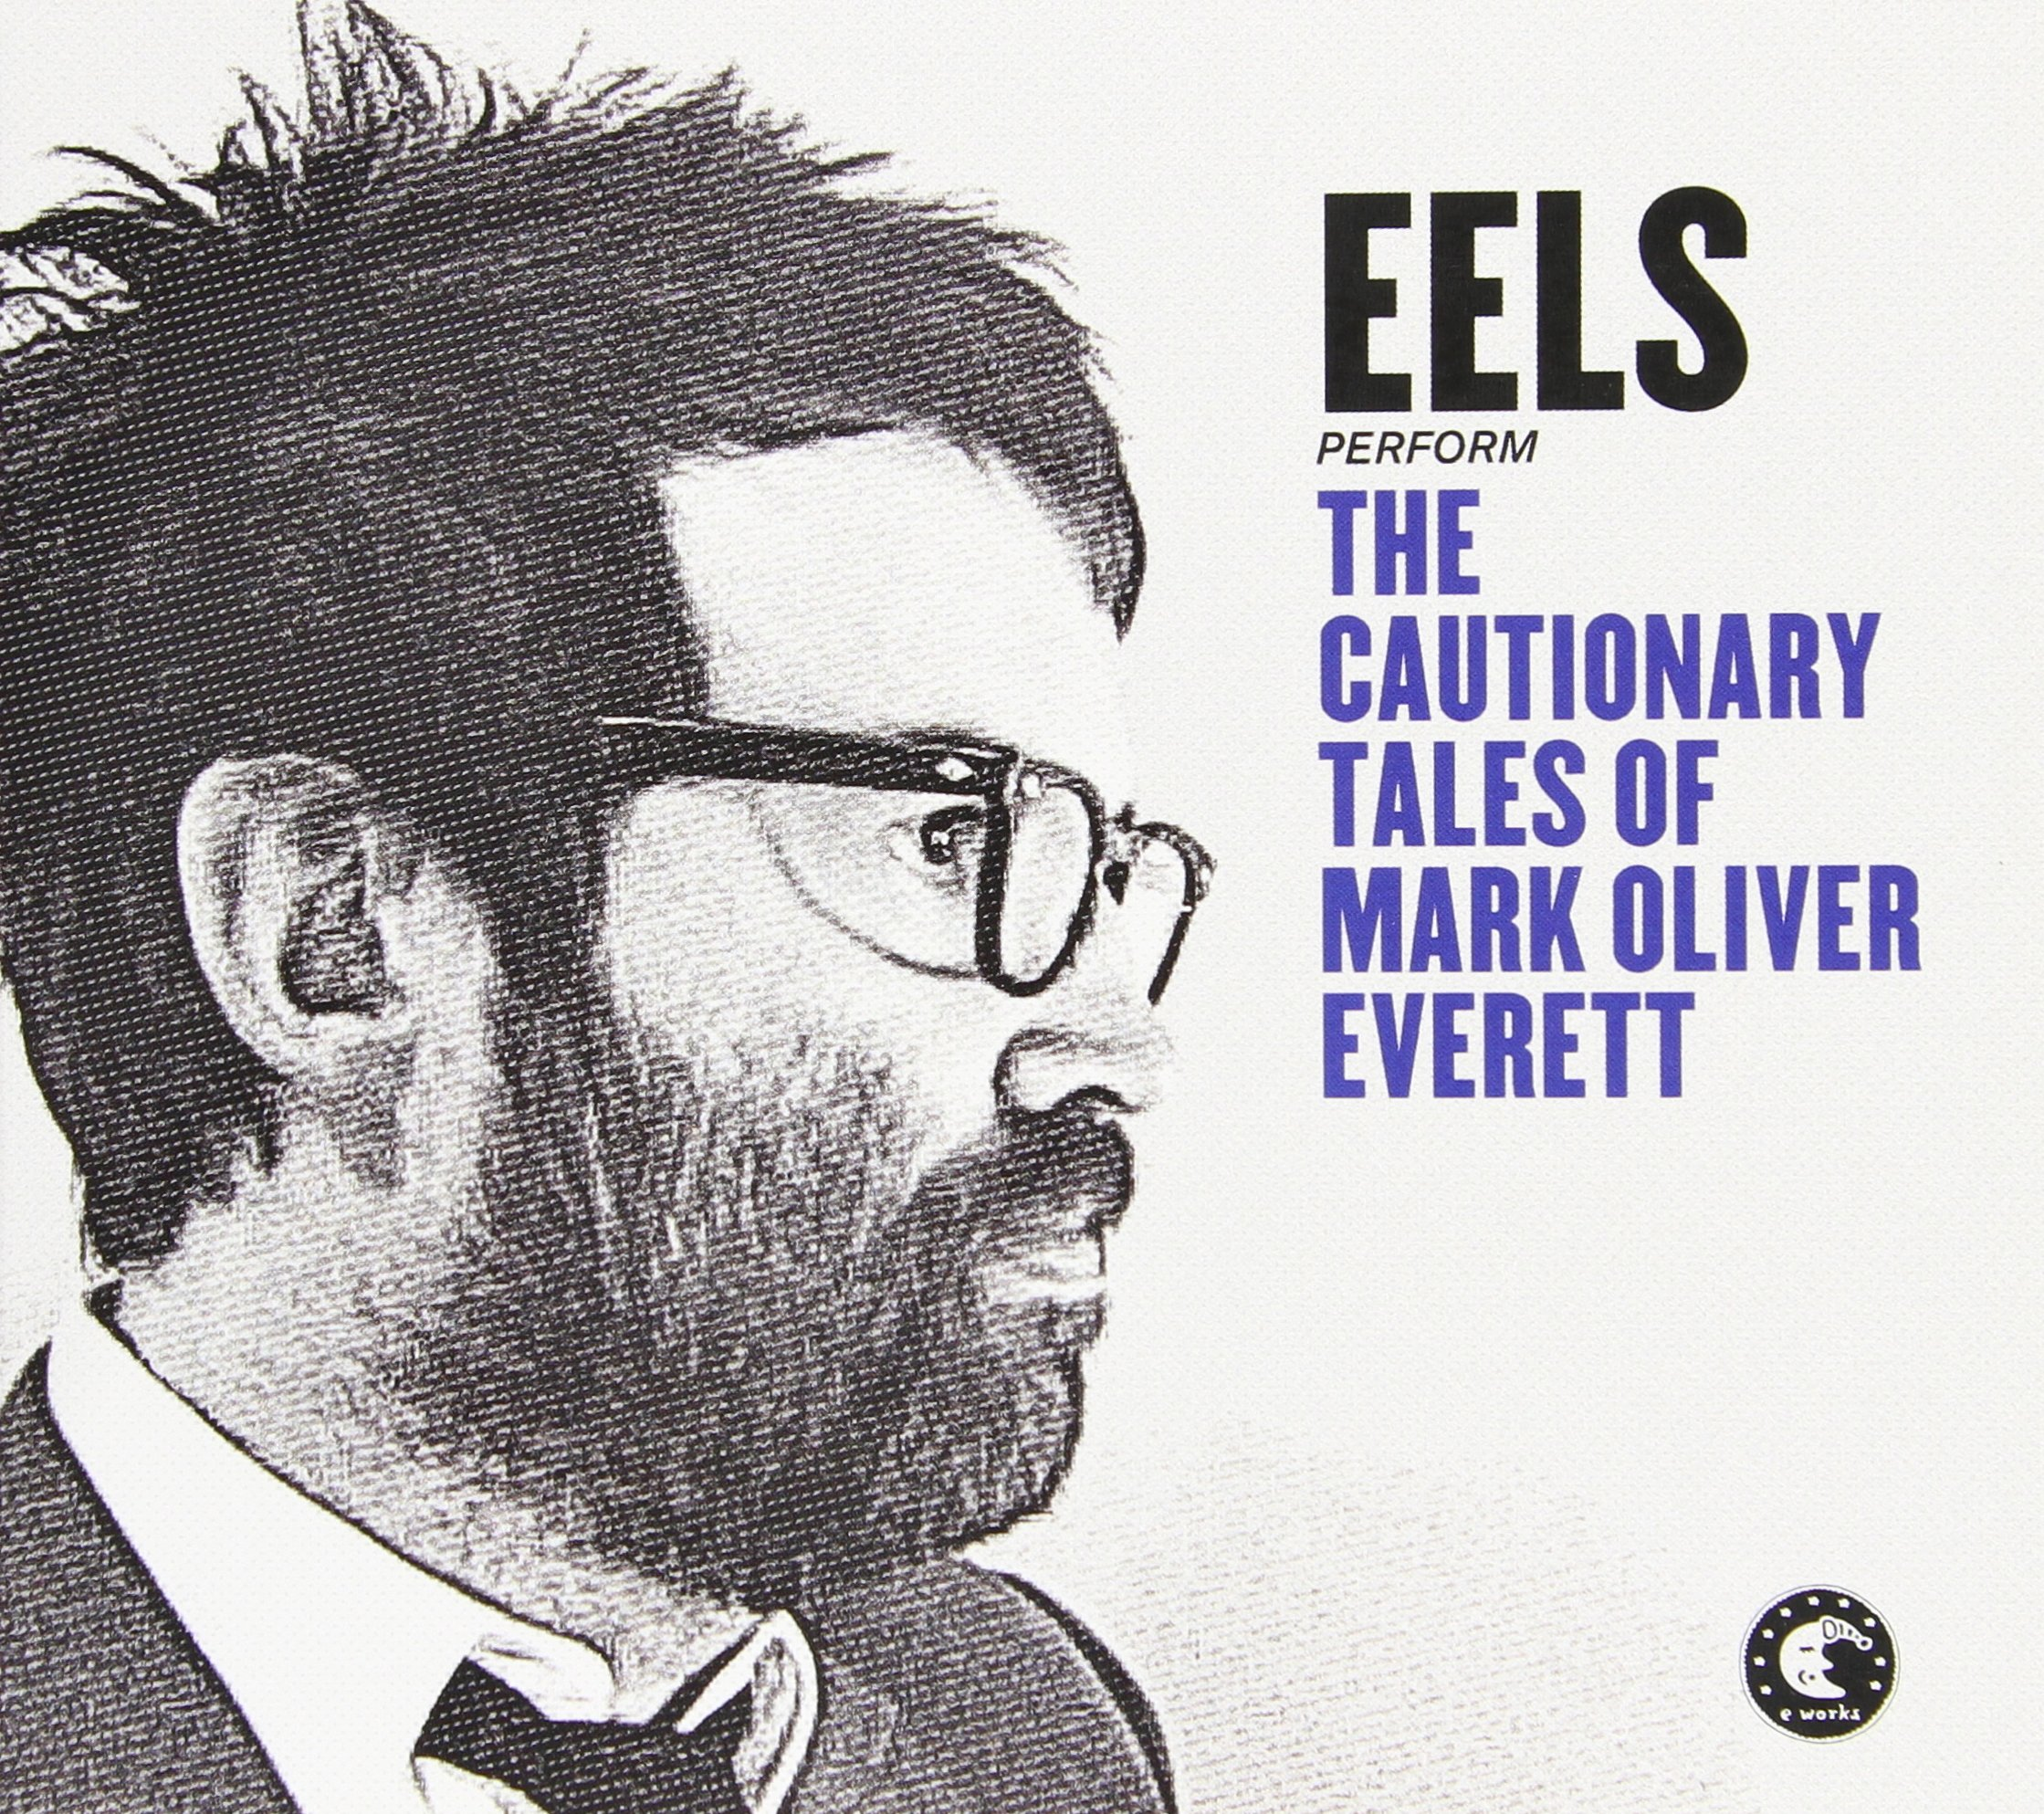 CD : Eels - The Cautionary Tales Of Mark Oliver Everett (CD)